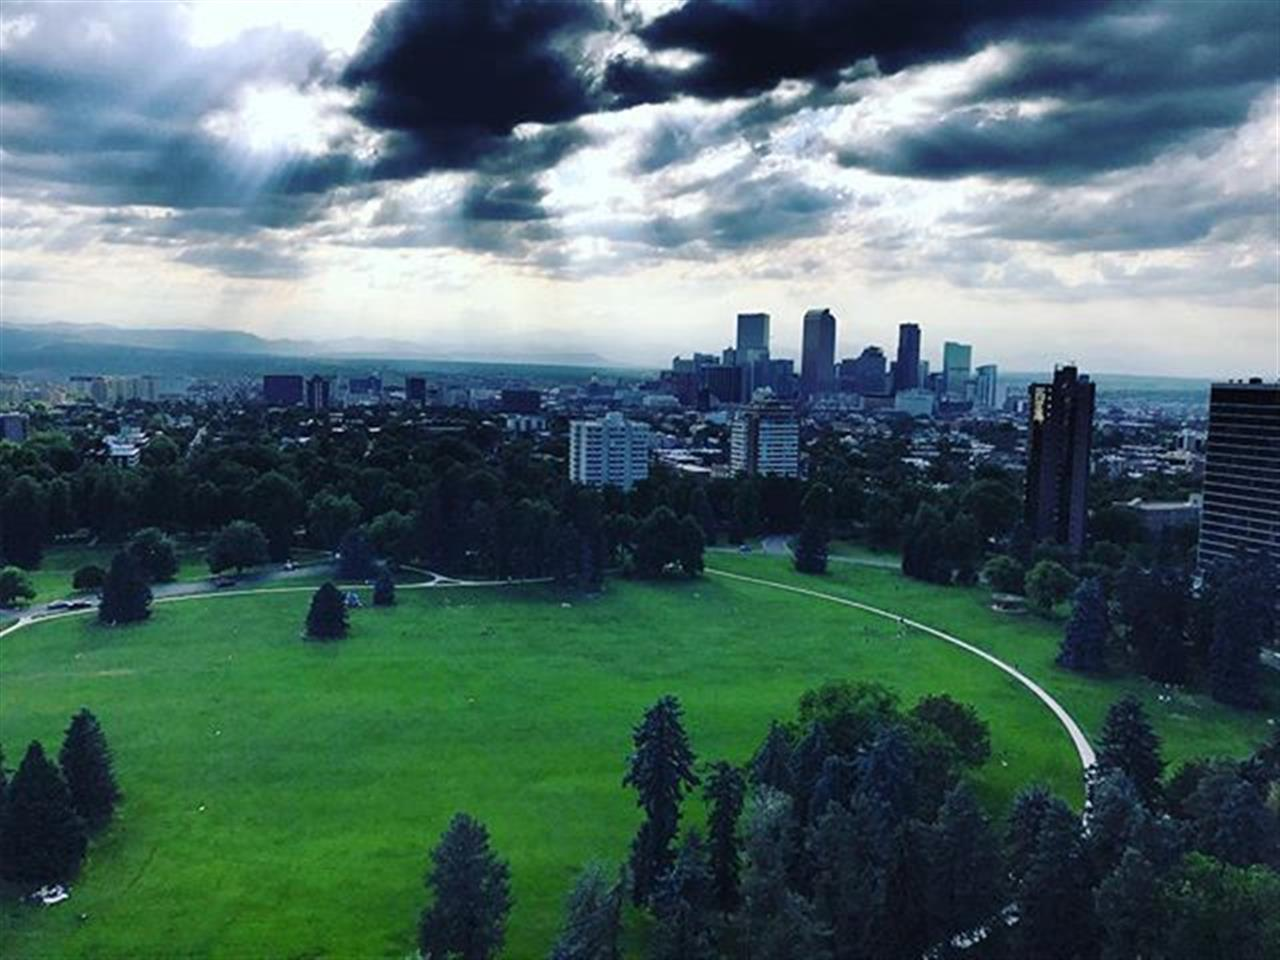 It's views like this of Cheesman Park that make us appreciate the Denver Lifestyle even more. #goexploredenver #denverlife #cheesmanpark #parks #moodysky #leadingrelocal